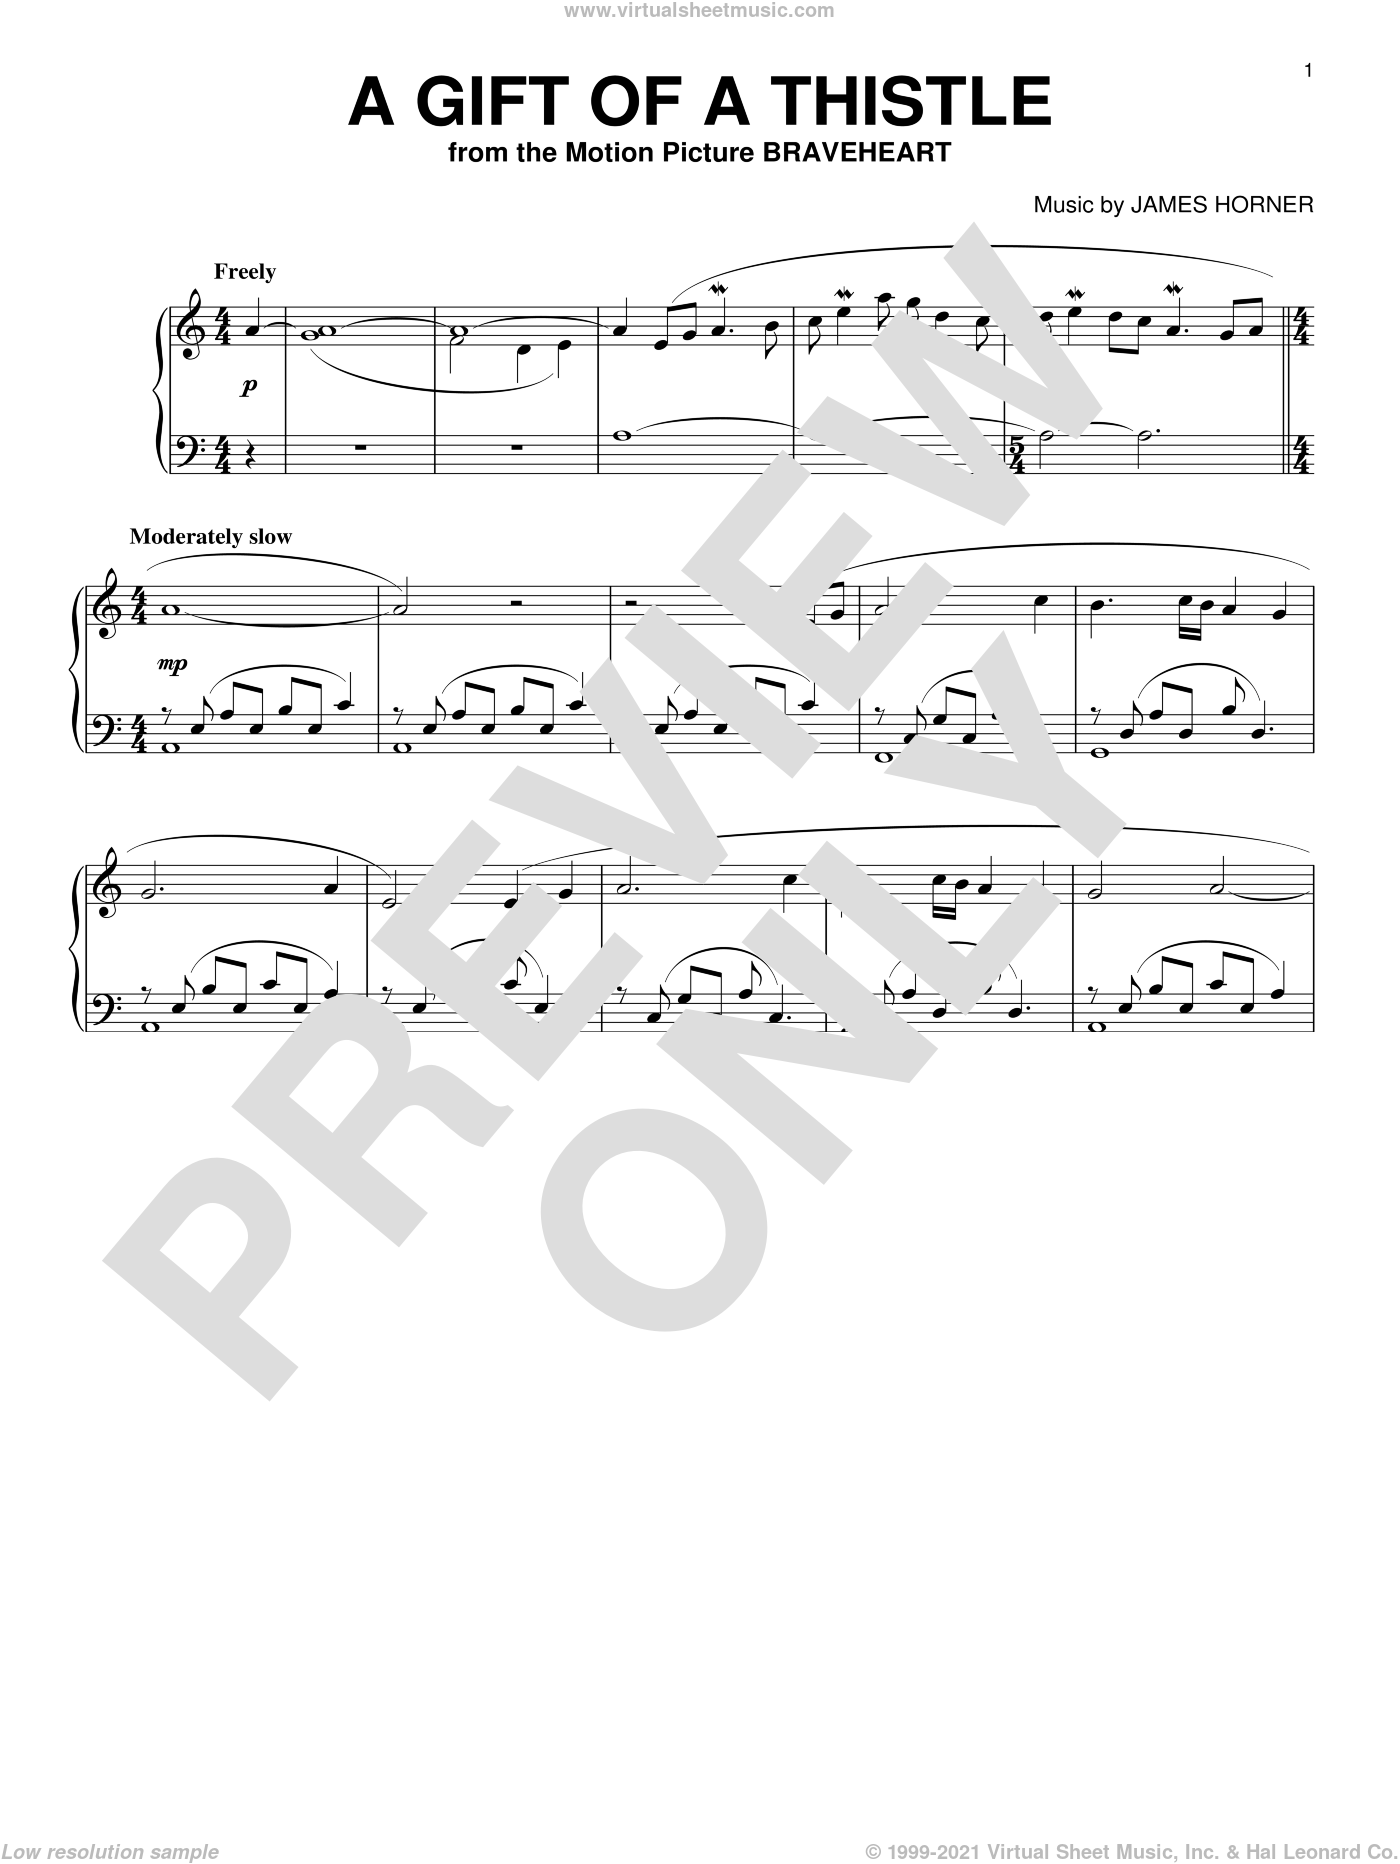 A Gift Of A Thistle sheet music for piano solo by James Horner, intermediate skill level